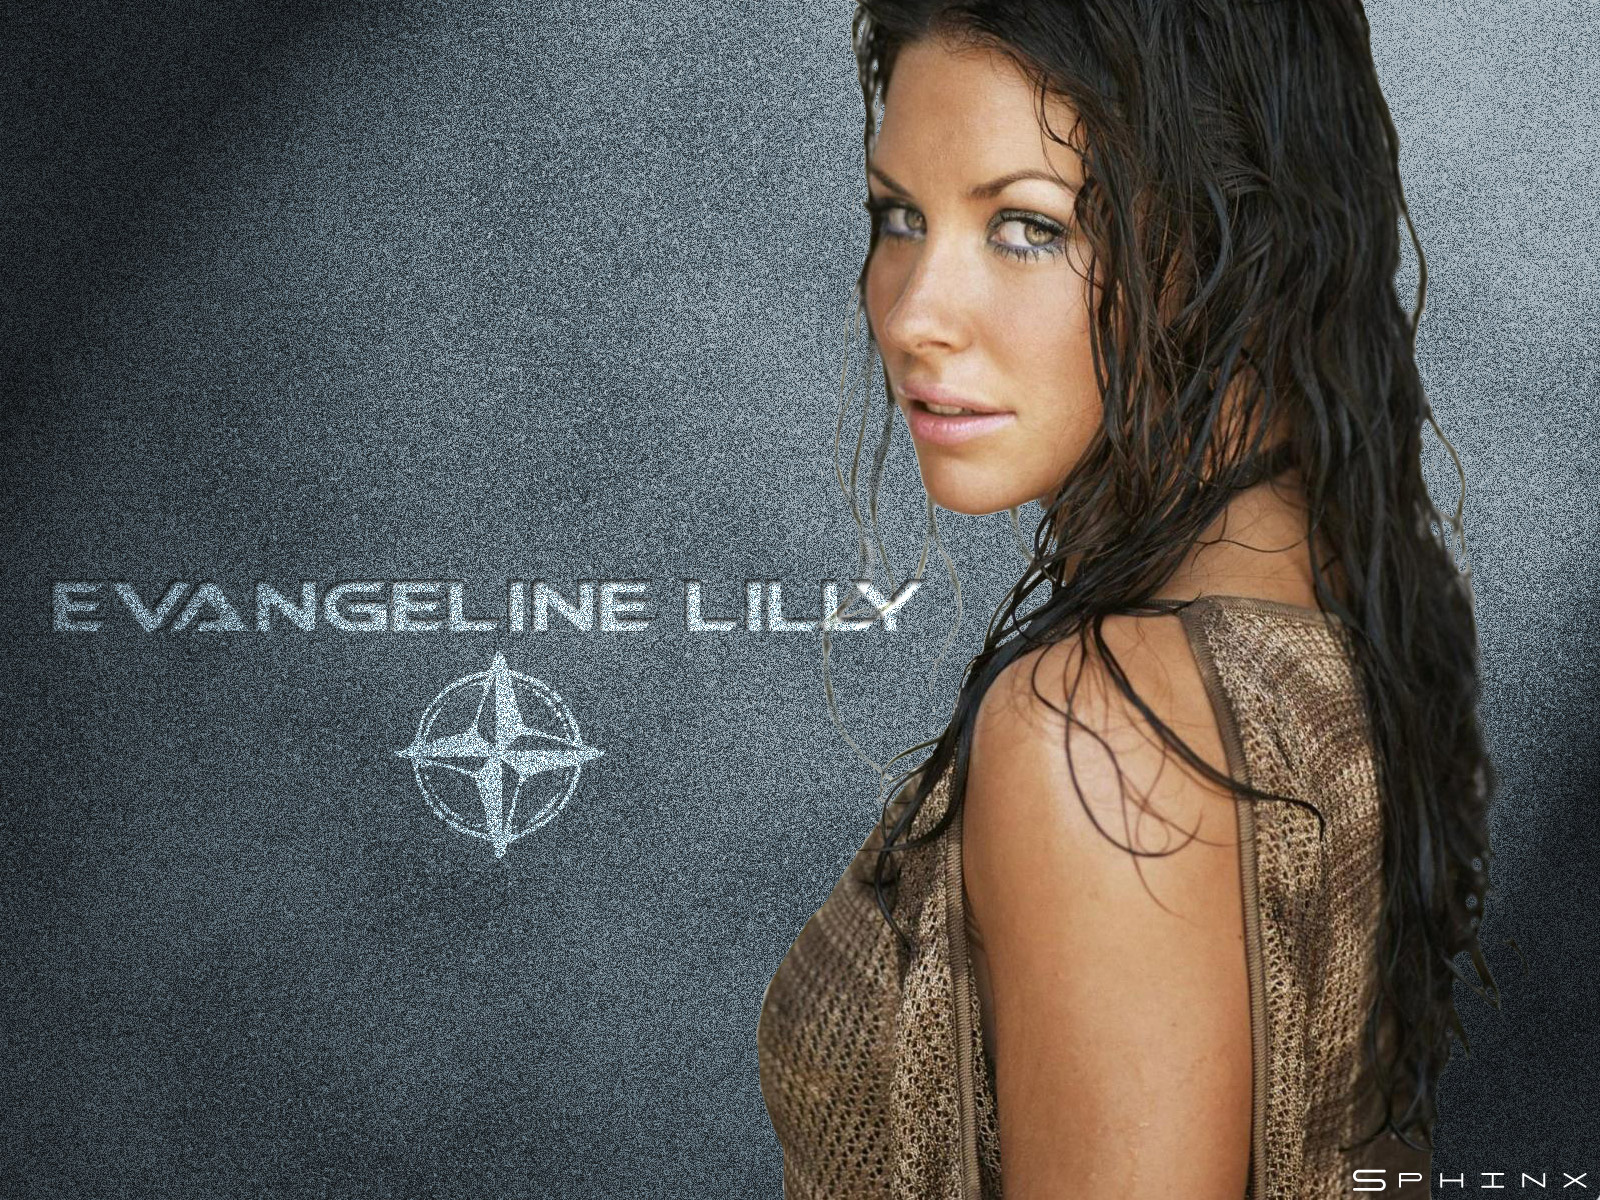 lilly Wallpapers Photos images Evangeline lilly pictures 8767 1600x1200